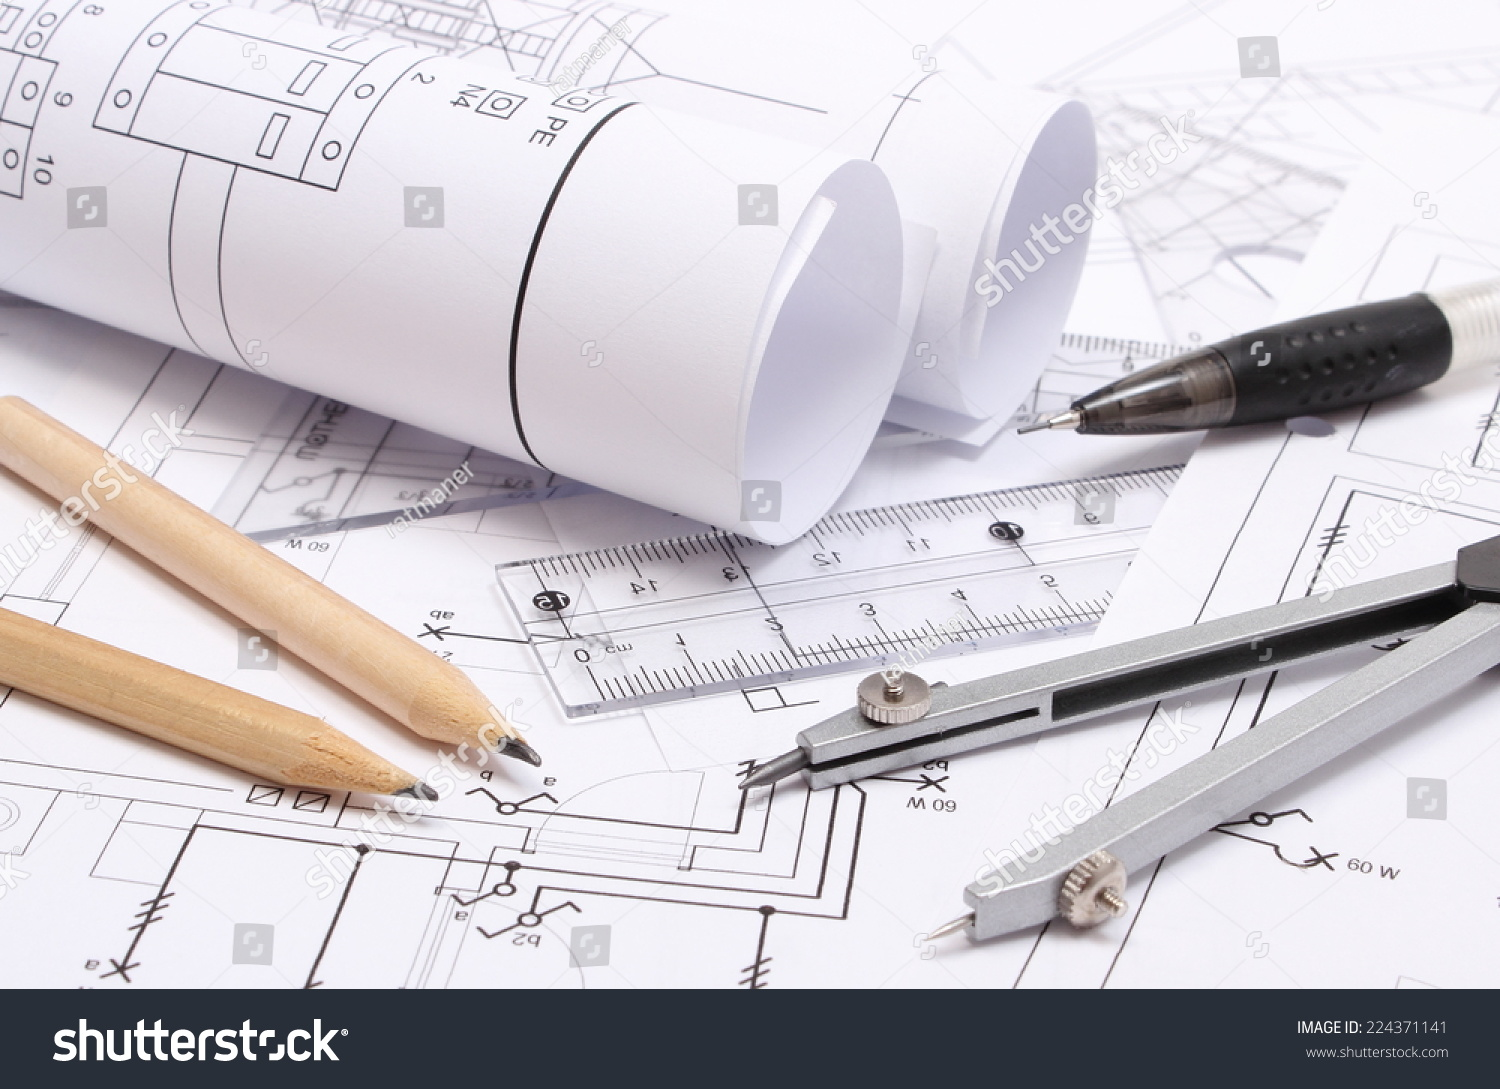 Rolled Electrical Diagrams And Accessories For Drawing Lying On Construction Of House Drawings The Projects Engineer Jobs Ez